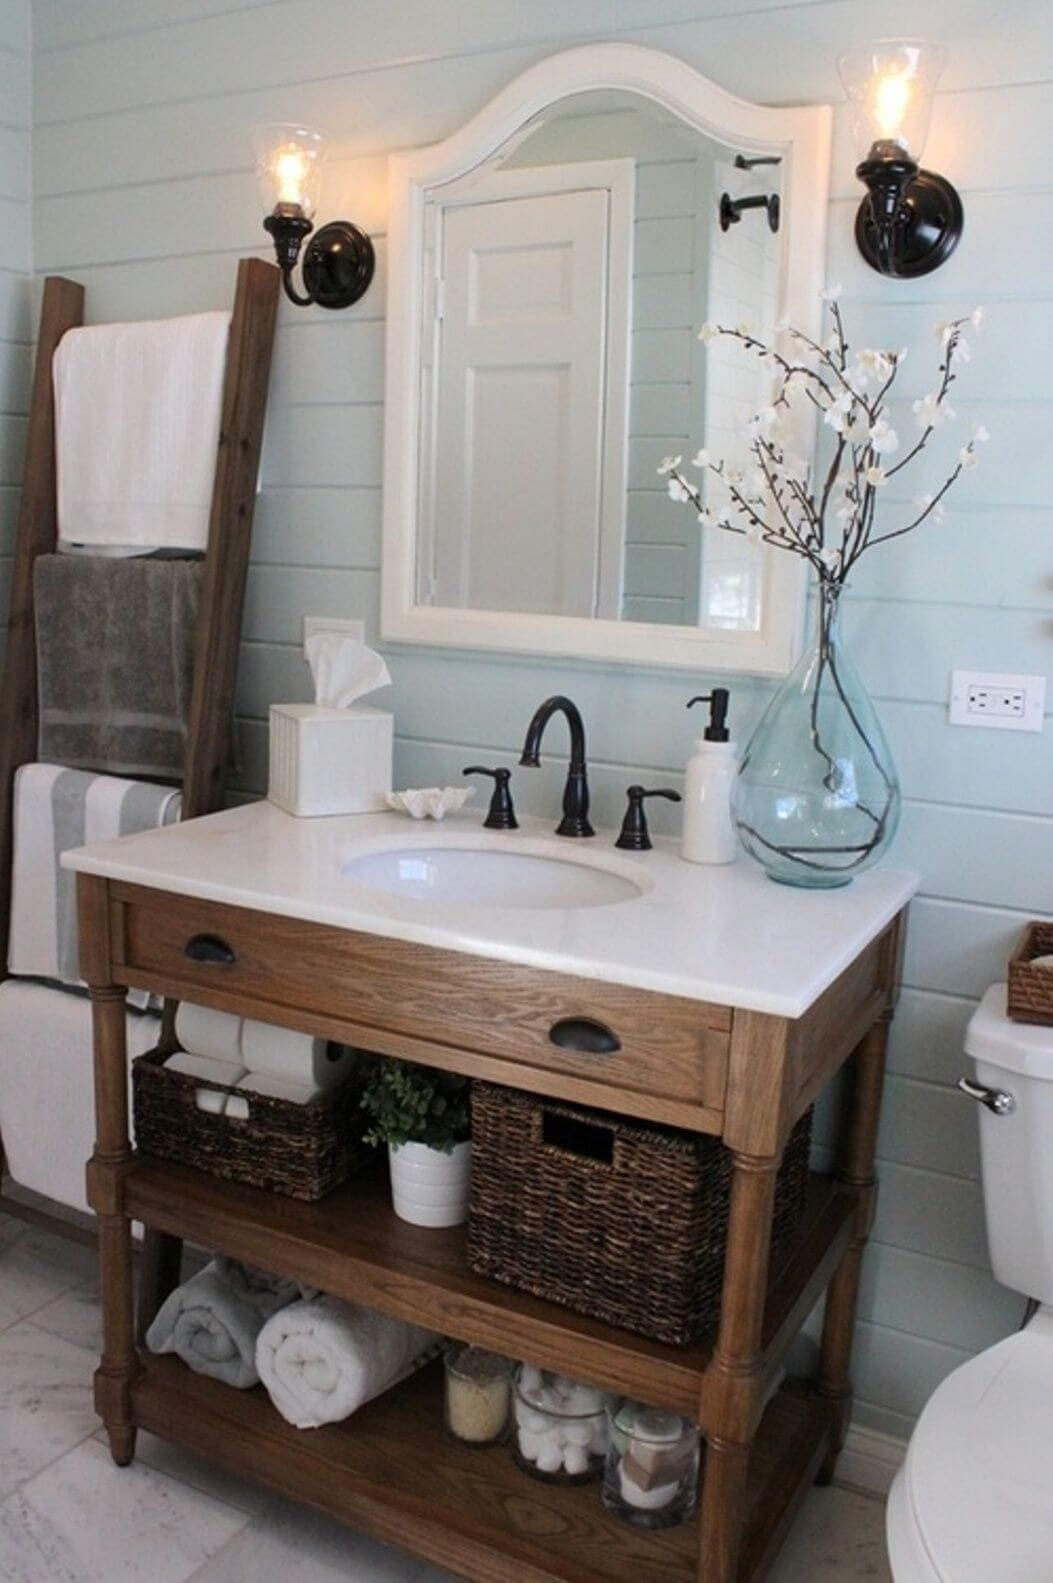 32 Small Bathroom Design Ideas For Every Taste Farmhouse Bathroom Decor Home Decor Inspiration Bathrooms Remodel